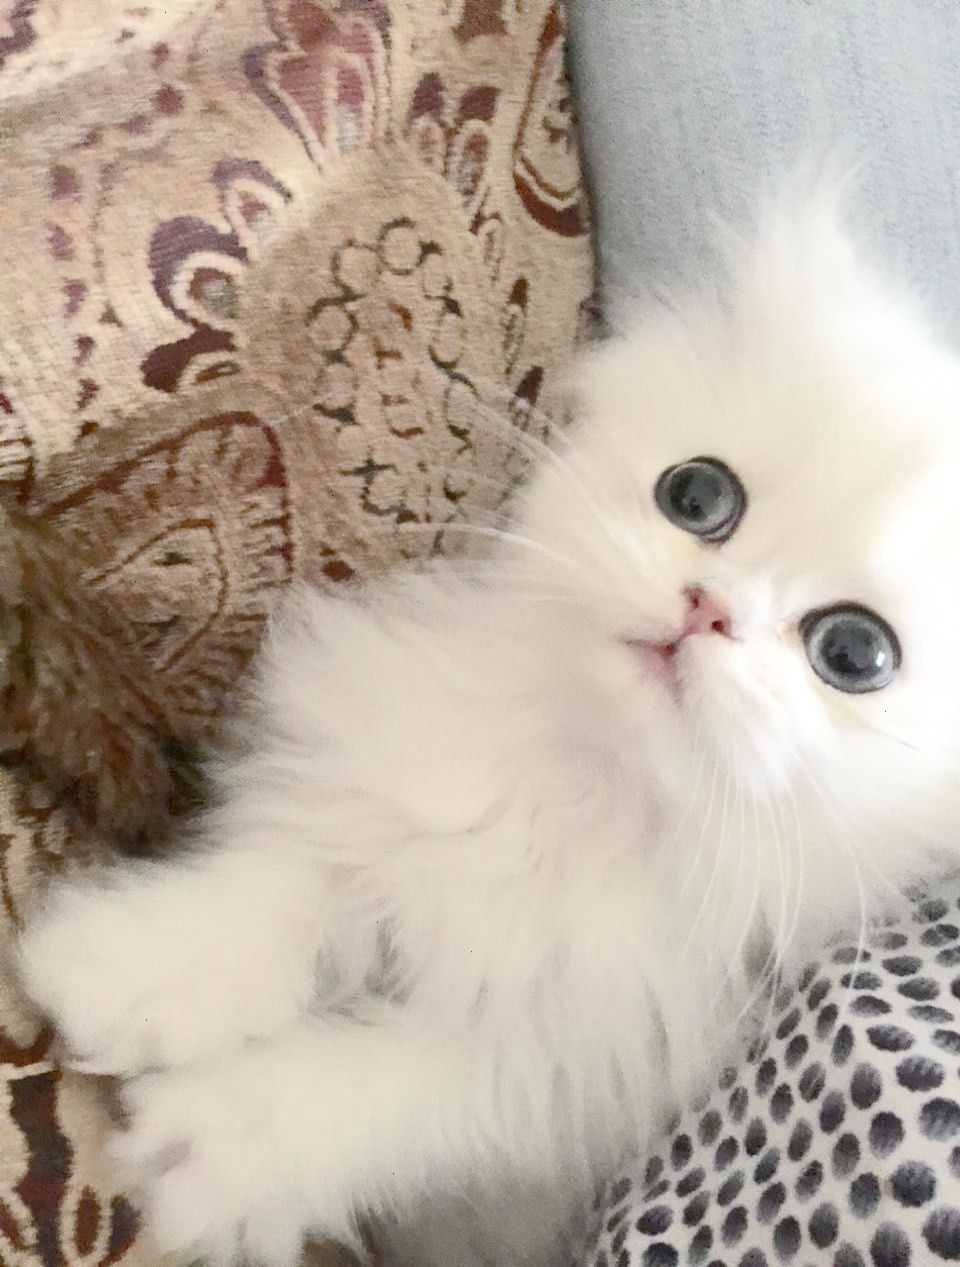 Persian Kittens Gallery Teacup Kittens For Sale Cute Cats And Kittens Teacup Kitten Cats And Kittens